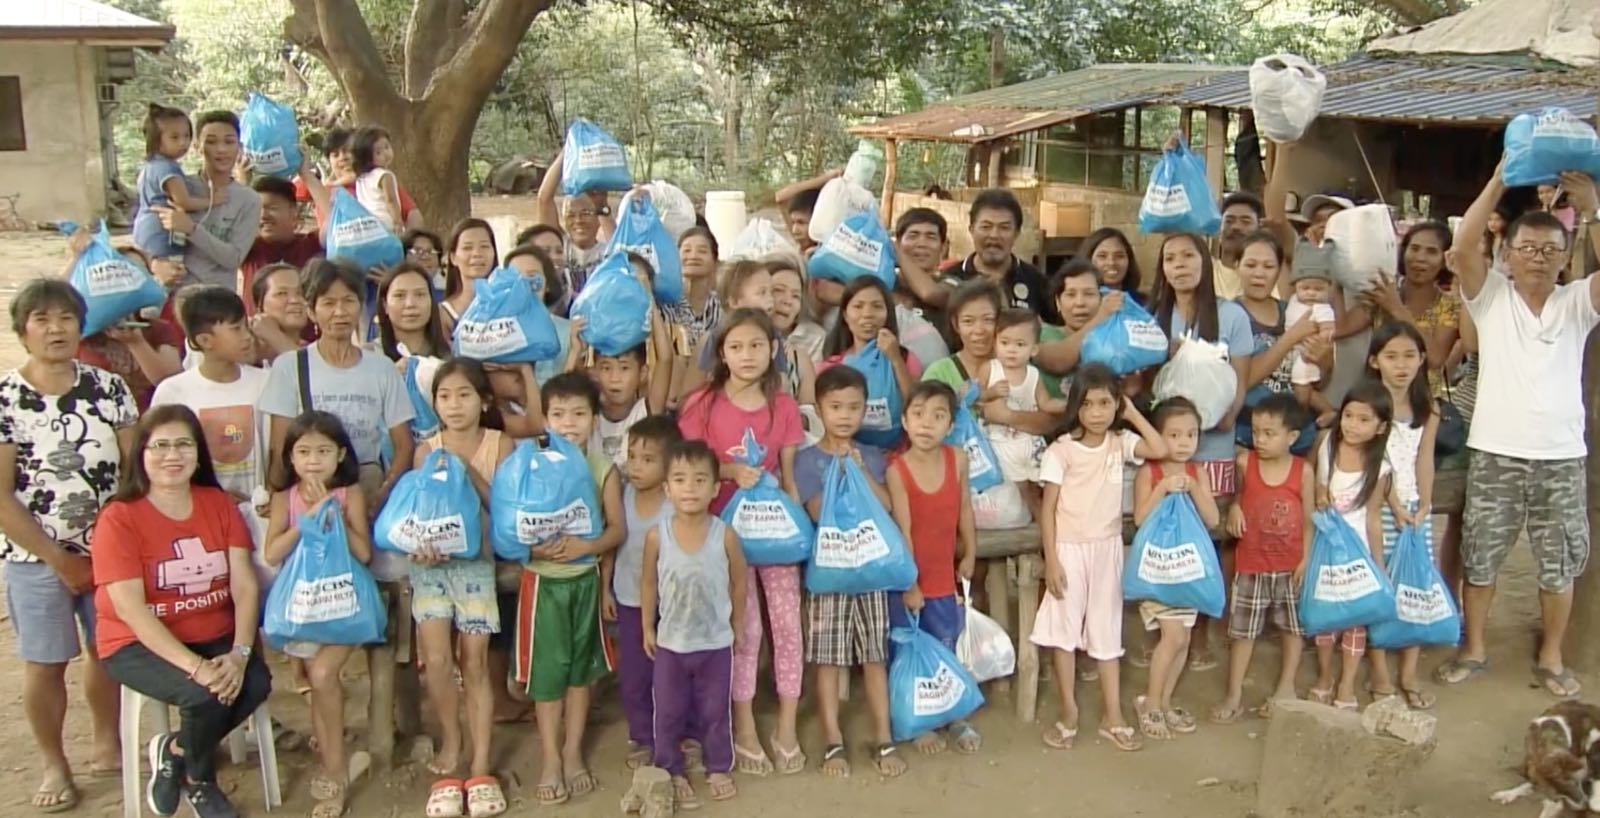 ABS-CBN reaches out to evacuees via 'Tulong-Tulong sa Taal'